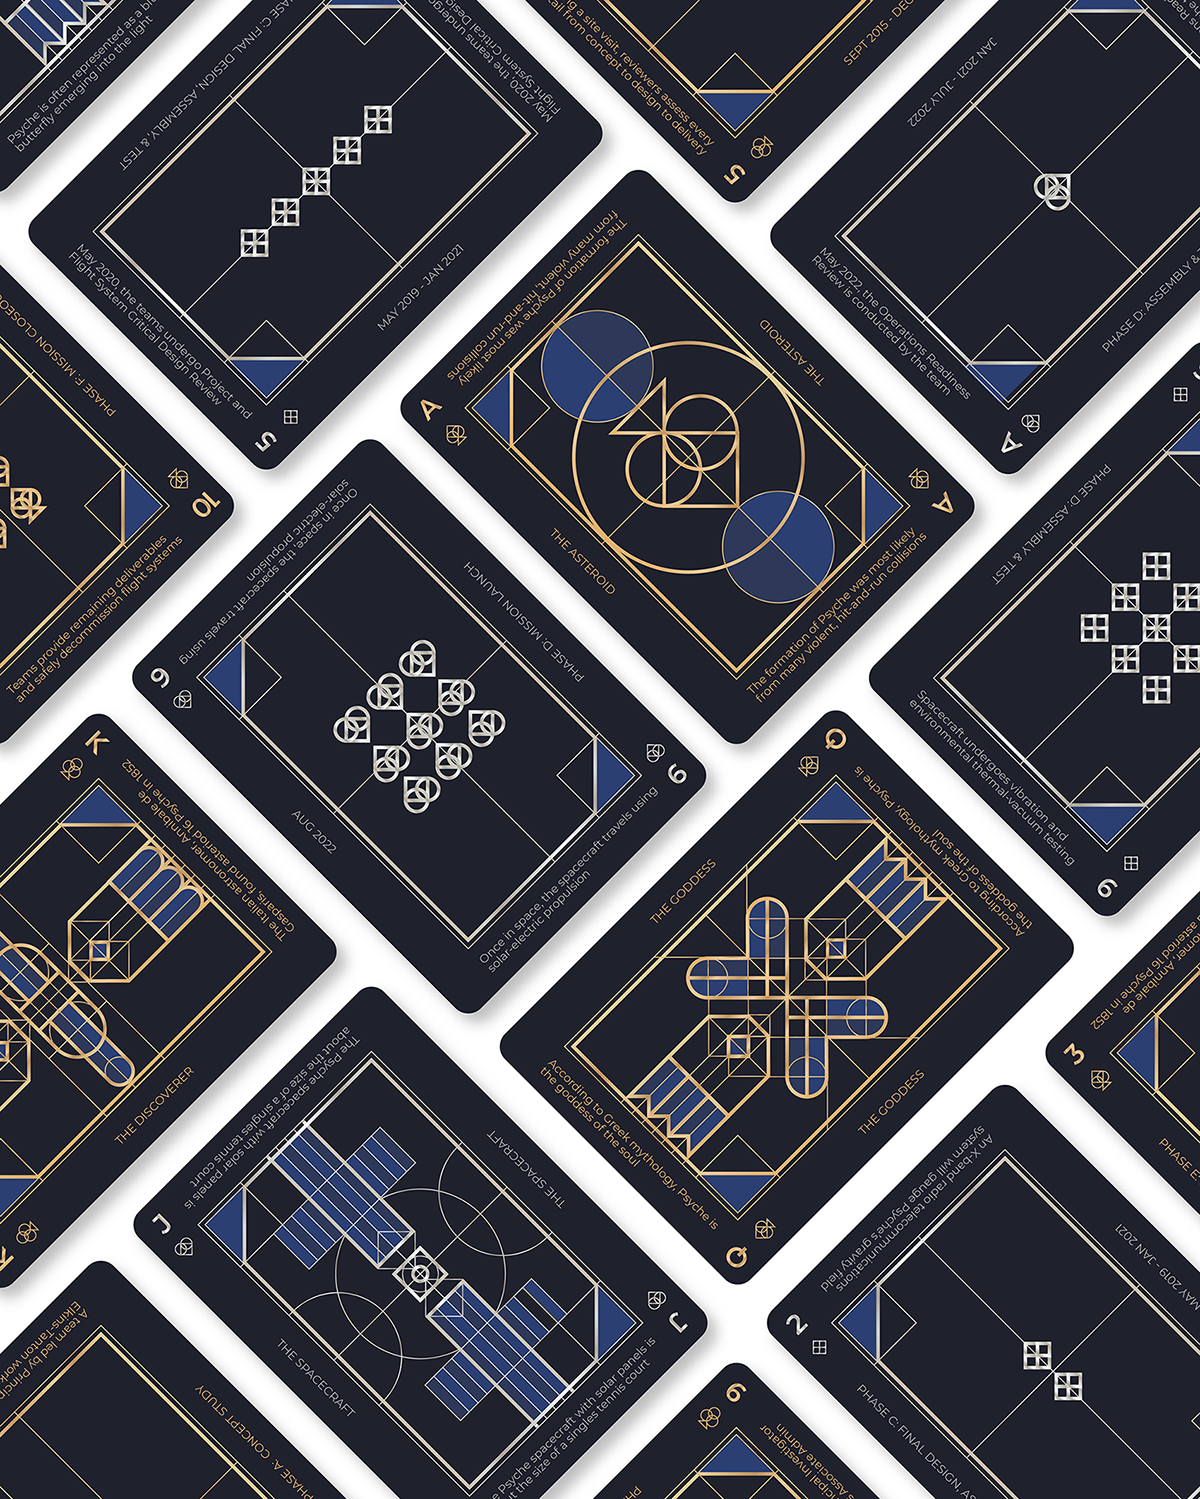 Space-themed playing cards.